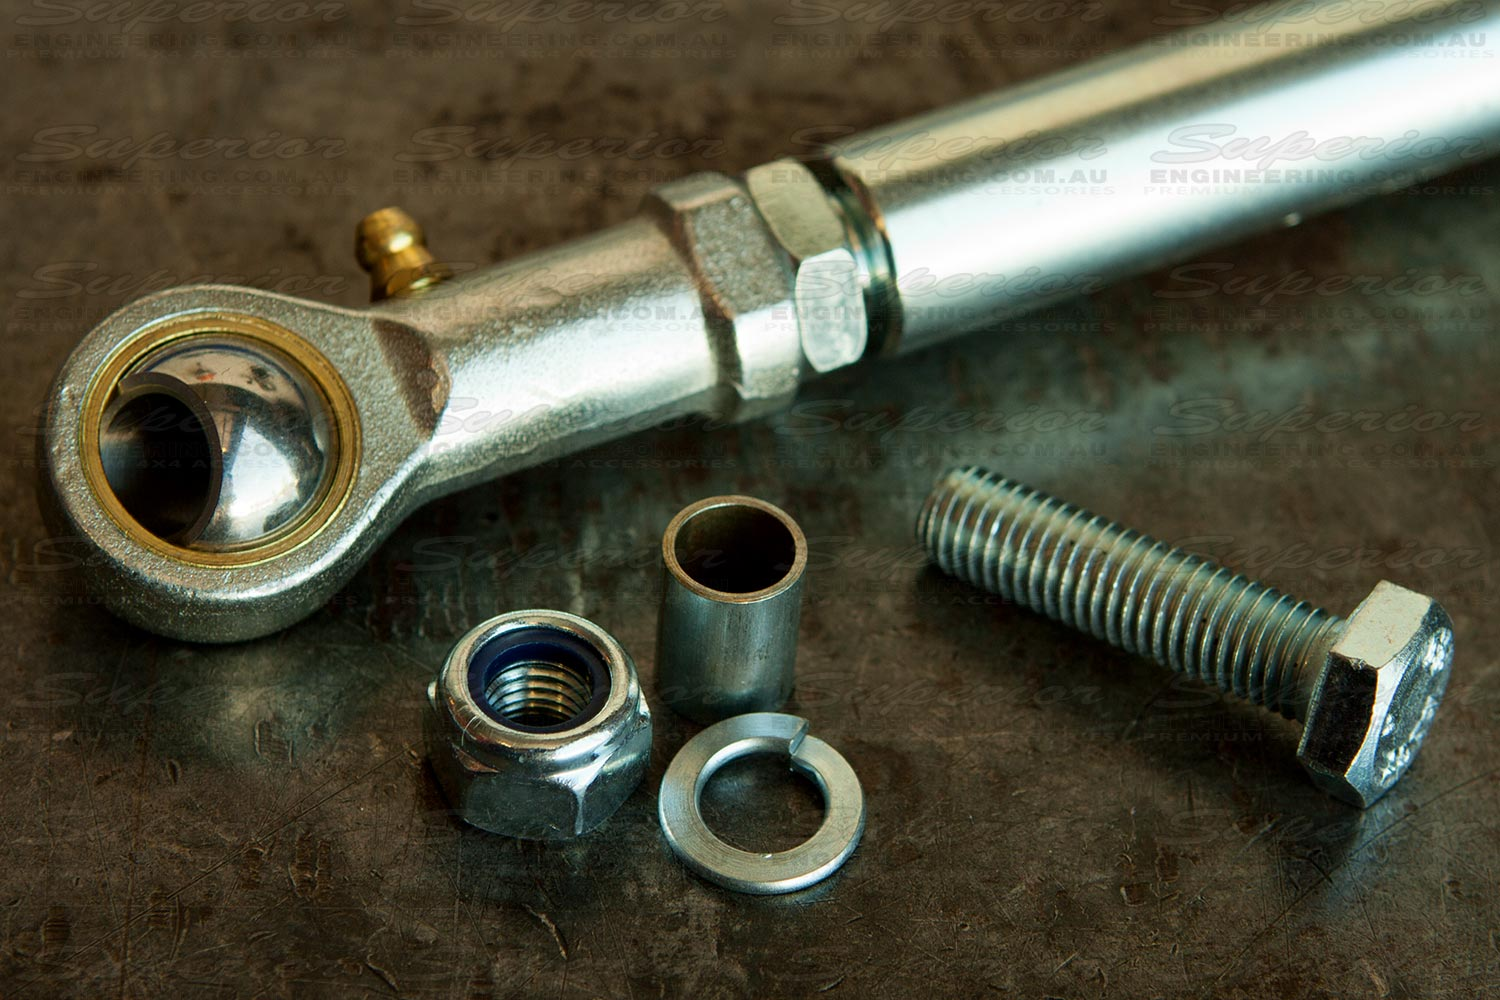 The necessary hardware and fittings for the swaybar extension